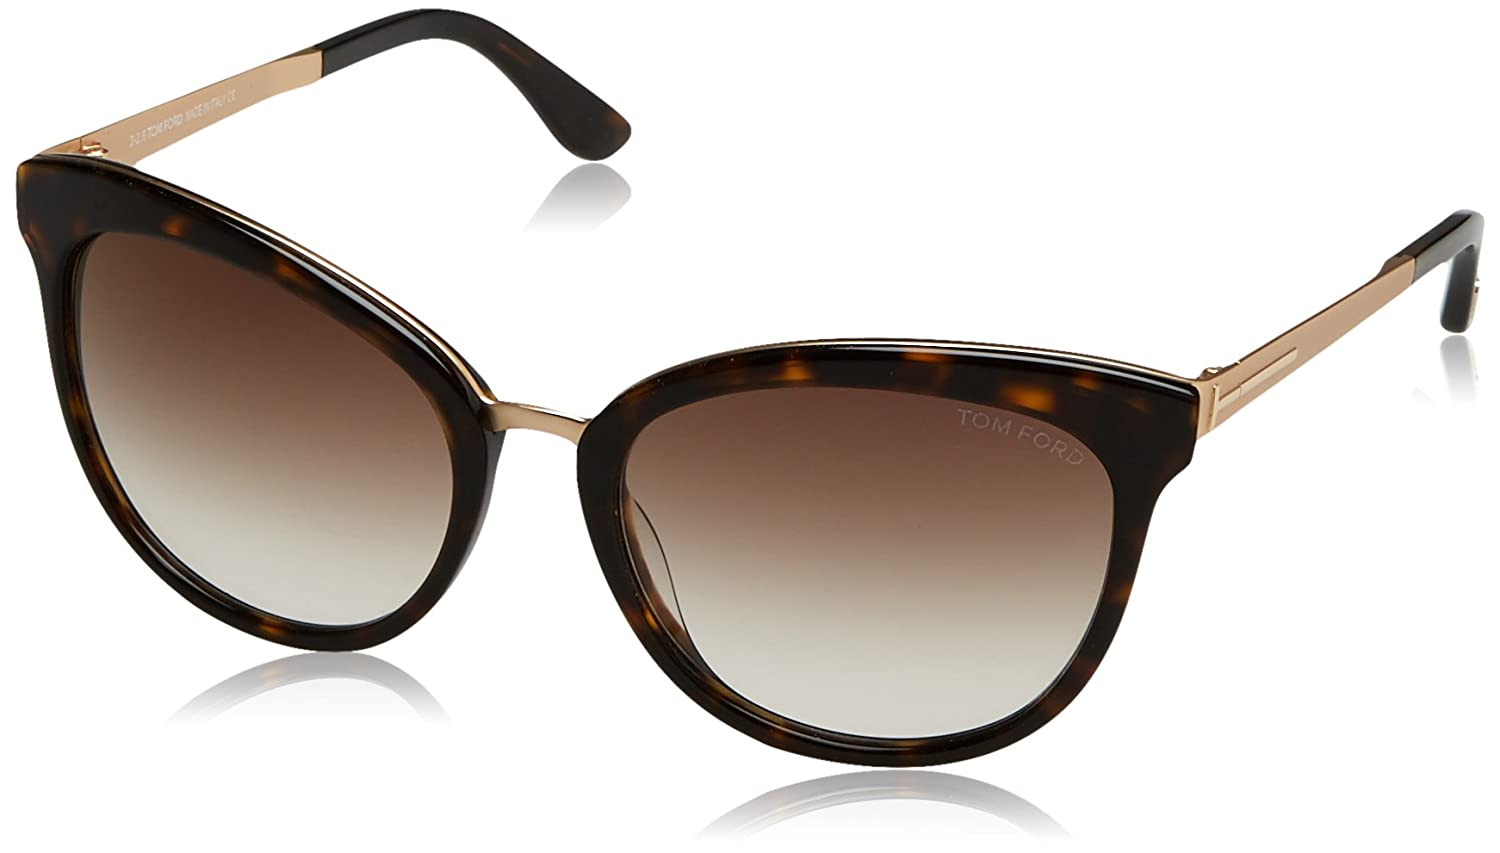 38d2500a917be Amazon.com: Tom Ford Emma 52G Tortoise/Gold Emma Cats Eyes Sunglasses Lens  Category 2 Siz: Tom Ford: Clothing